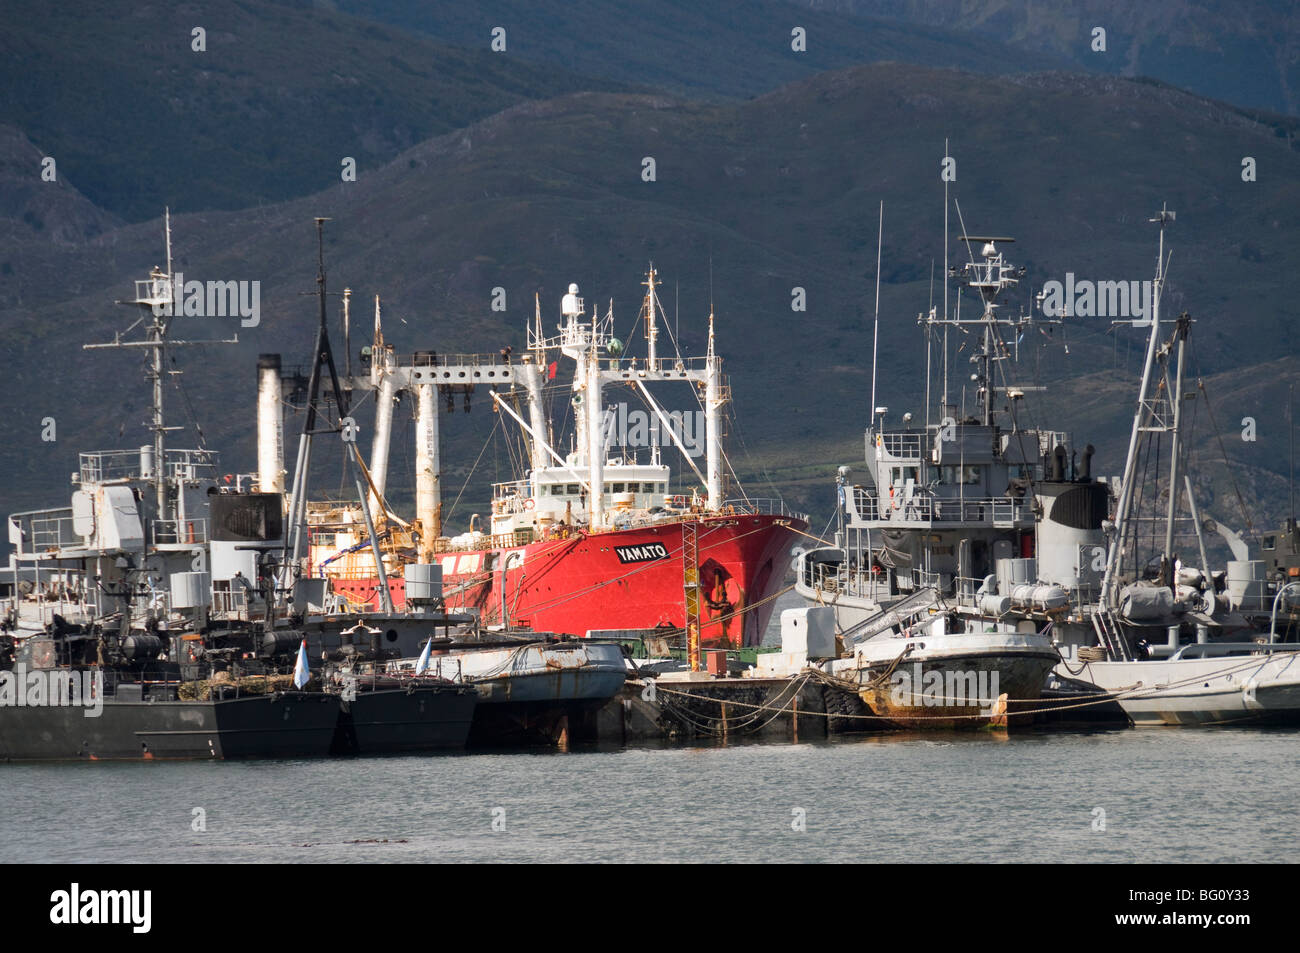 Ships in docks in the southernmost citiy in the world, Ushuaia, Argentina, South America - Stock Image